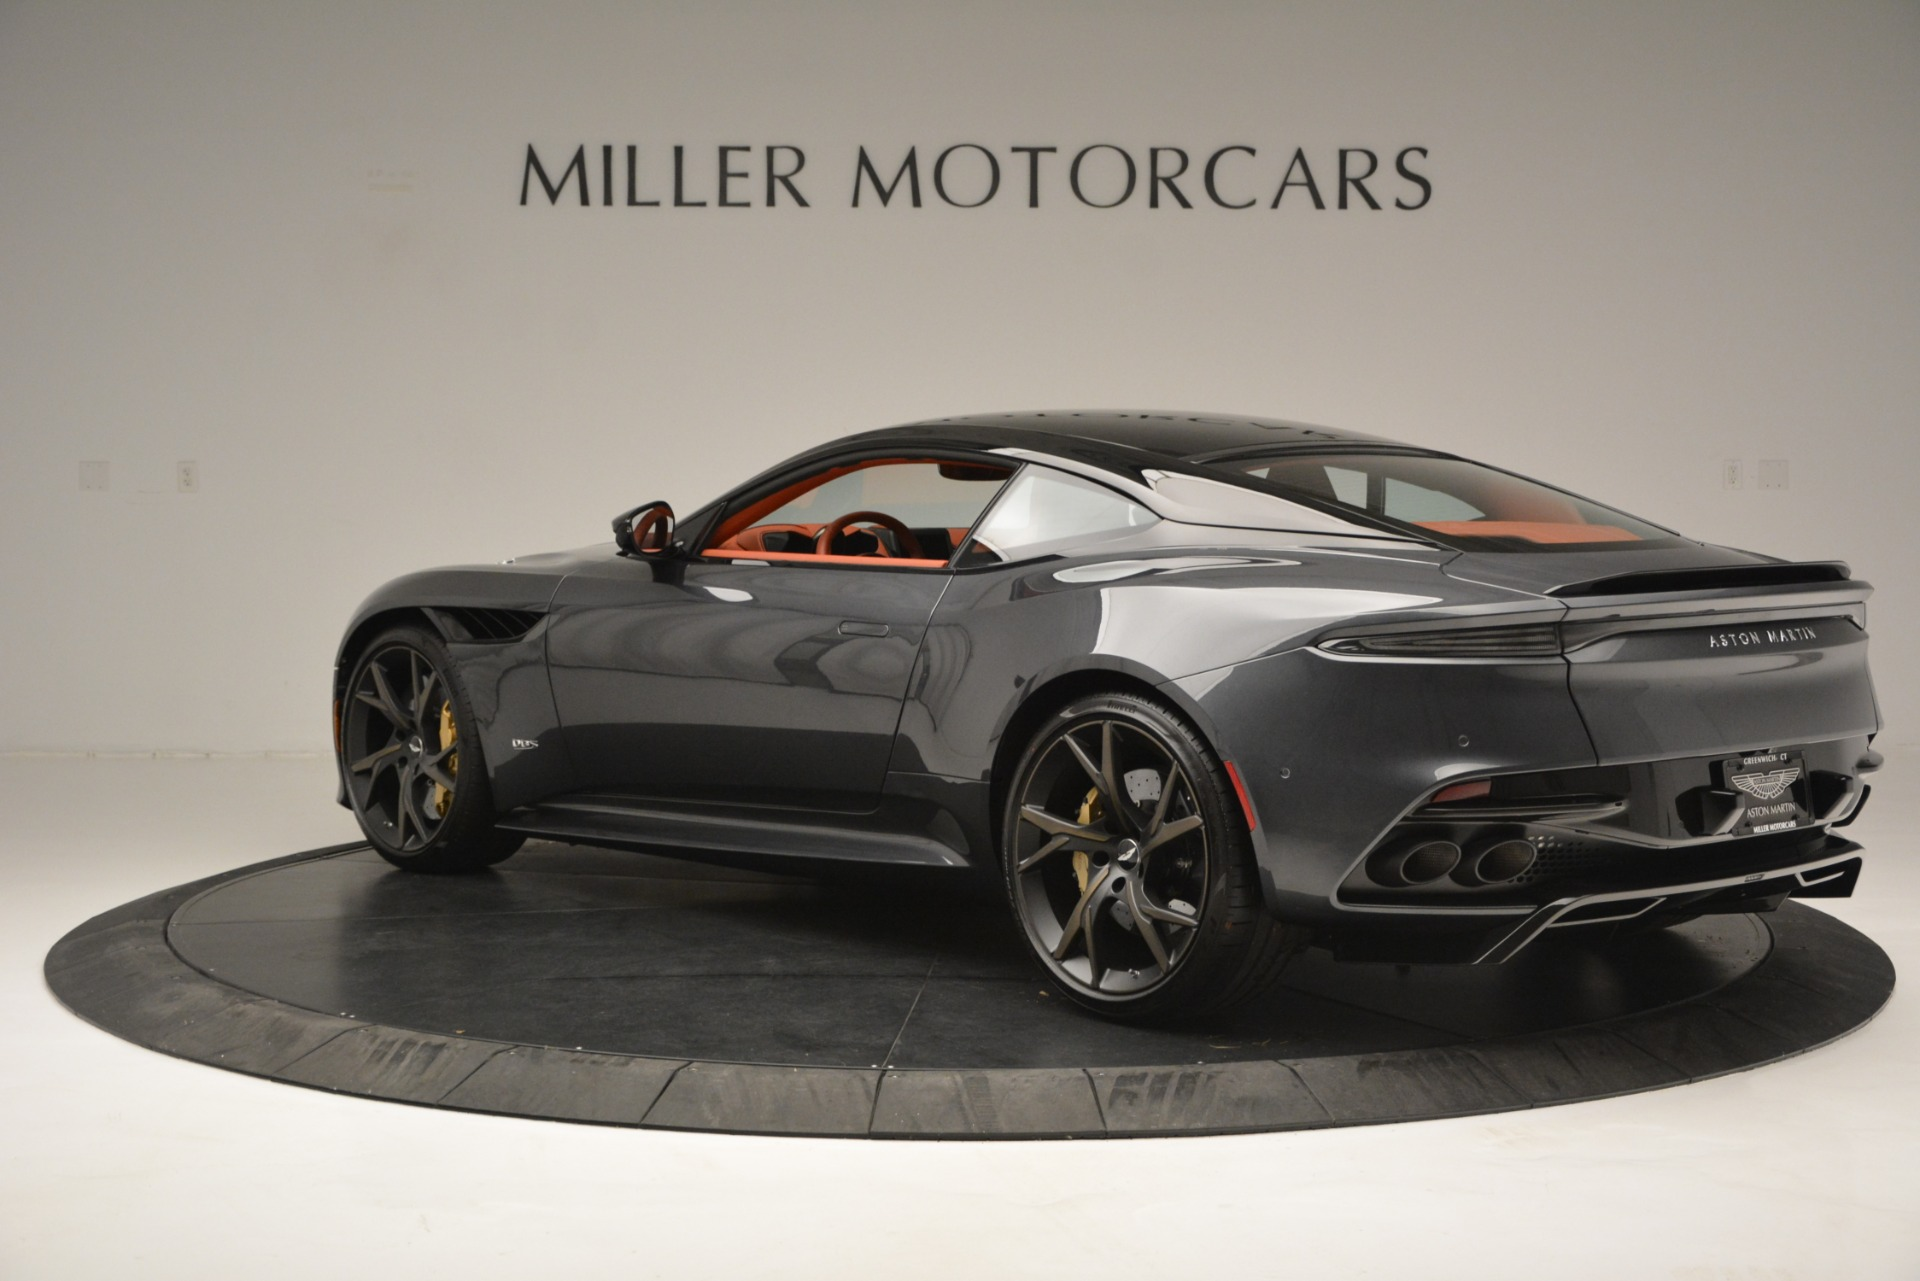 New 2019 Aston Martin DBS Superleggera For Sale In Greenwich, CT 2827_p4